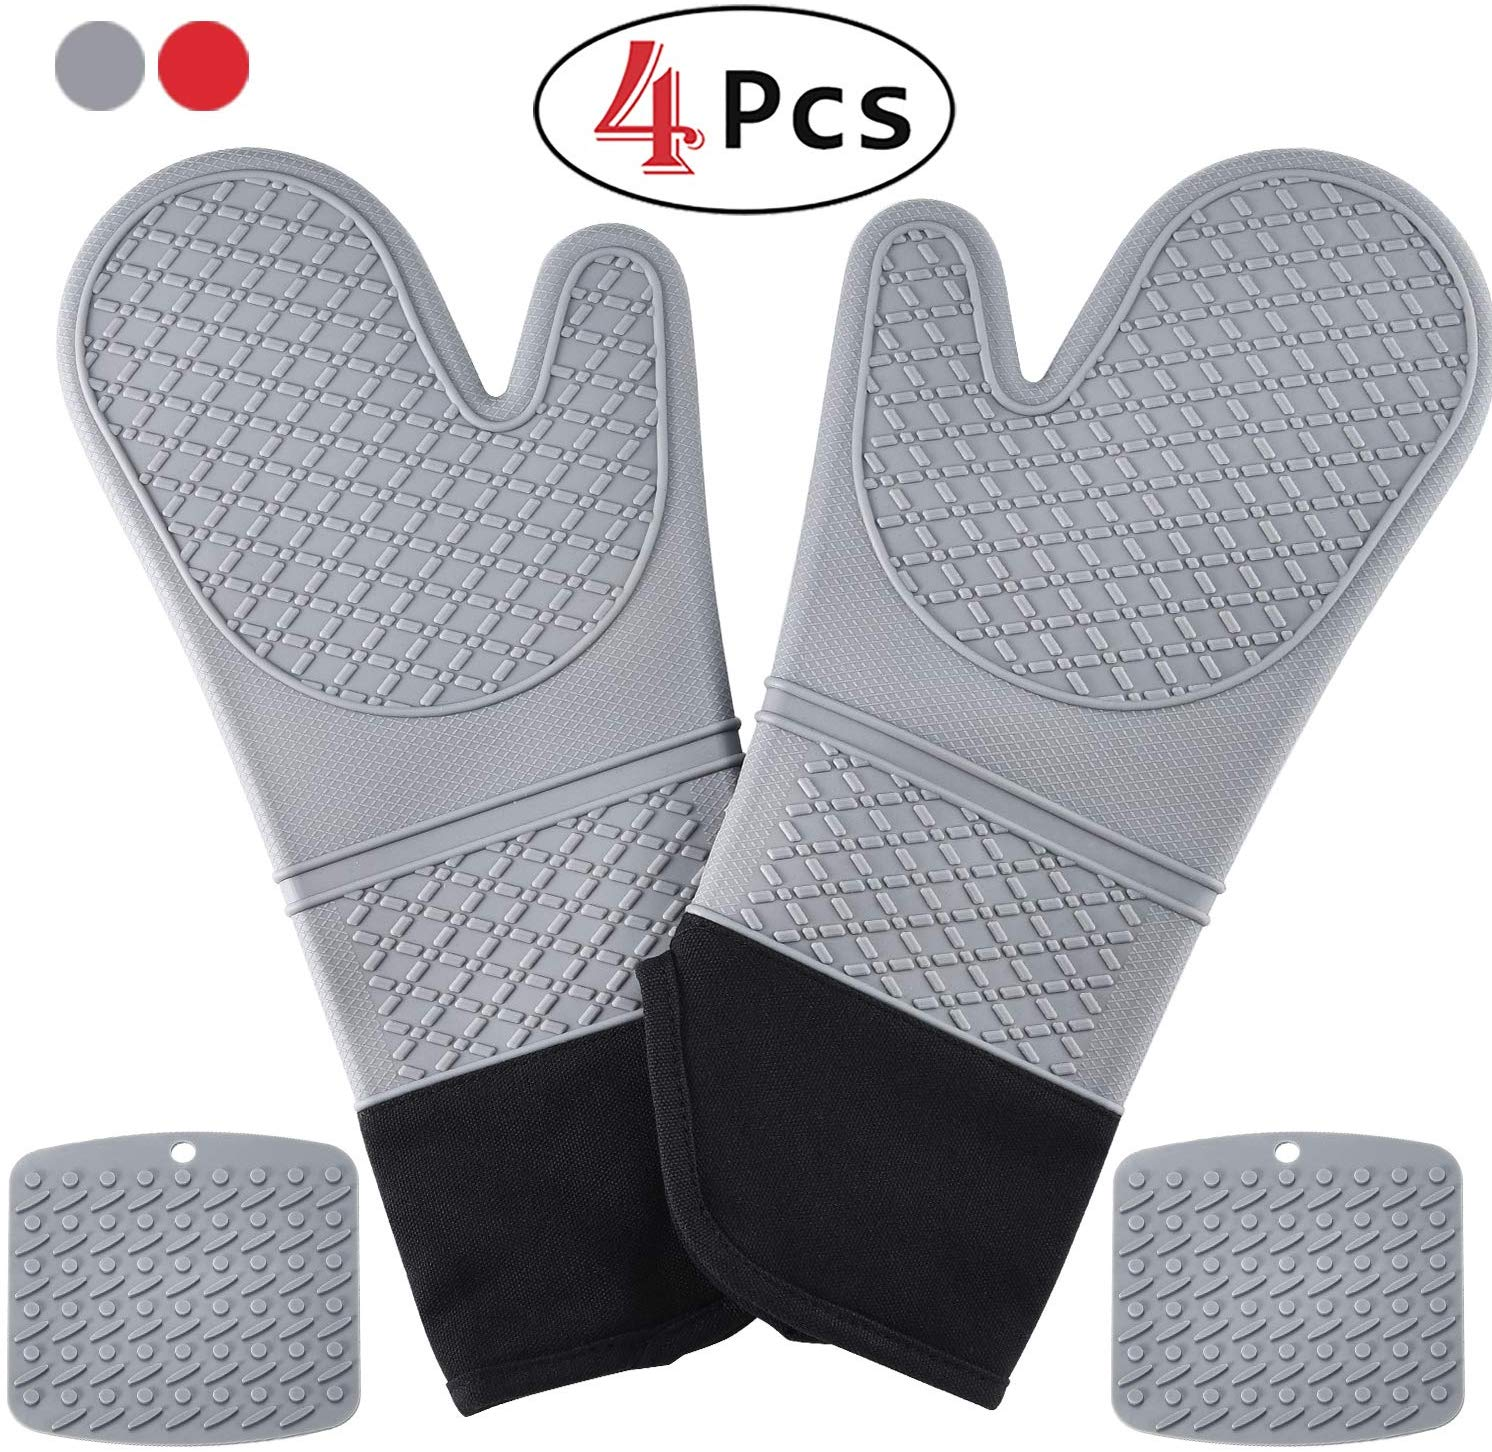 HmiL-U Silicone Oven Mitts | Pot Holders-1 Pair of Extra Long Heat Resistant up to 500 F Cooking Gloves with 2 PotHolders for Kitchen, Cooking, Baking,BBQ (Gray)